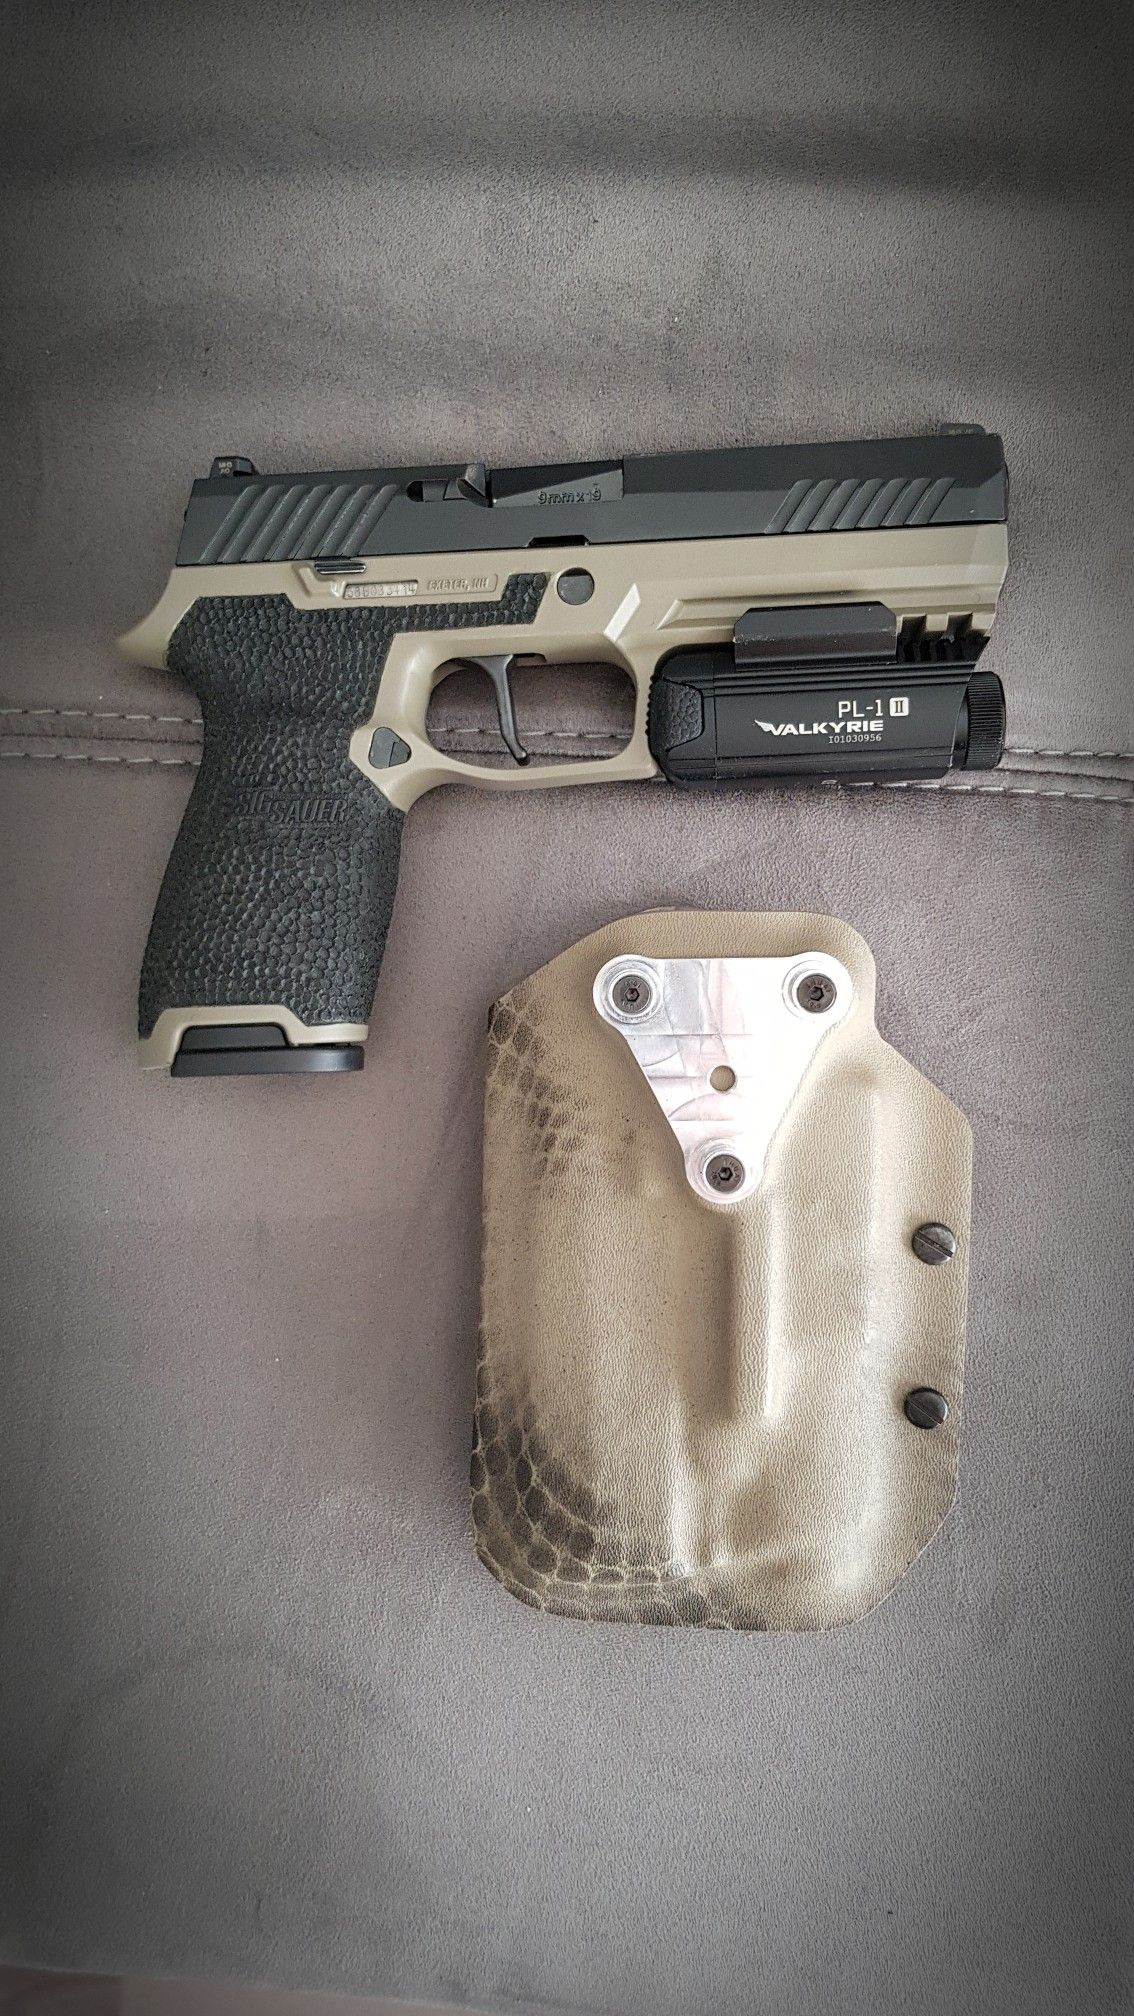 Sig P320 custom Apex trigger O light PL-1 Stippling Kydex holster